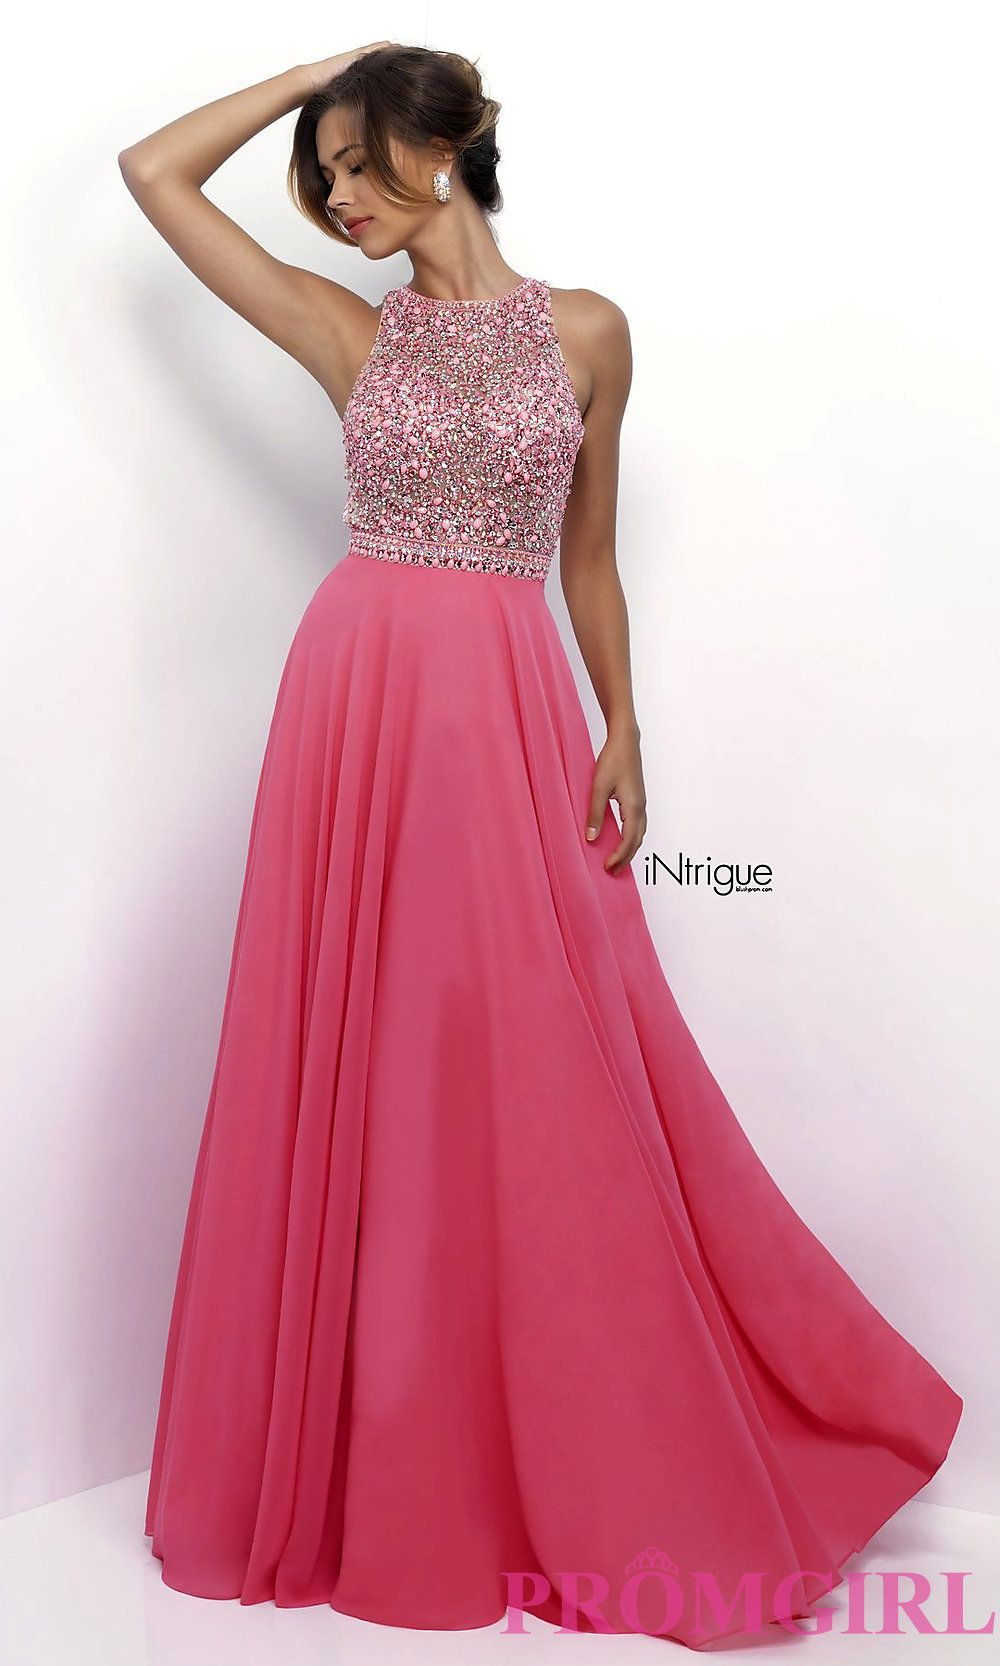 6251f116ce5 Long pink chiffon high neck open back prom dress with a beaded bodice from  Intrigue by Blush. Style  BL-IN-268